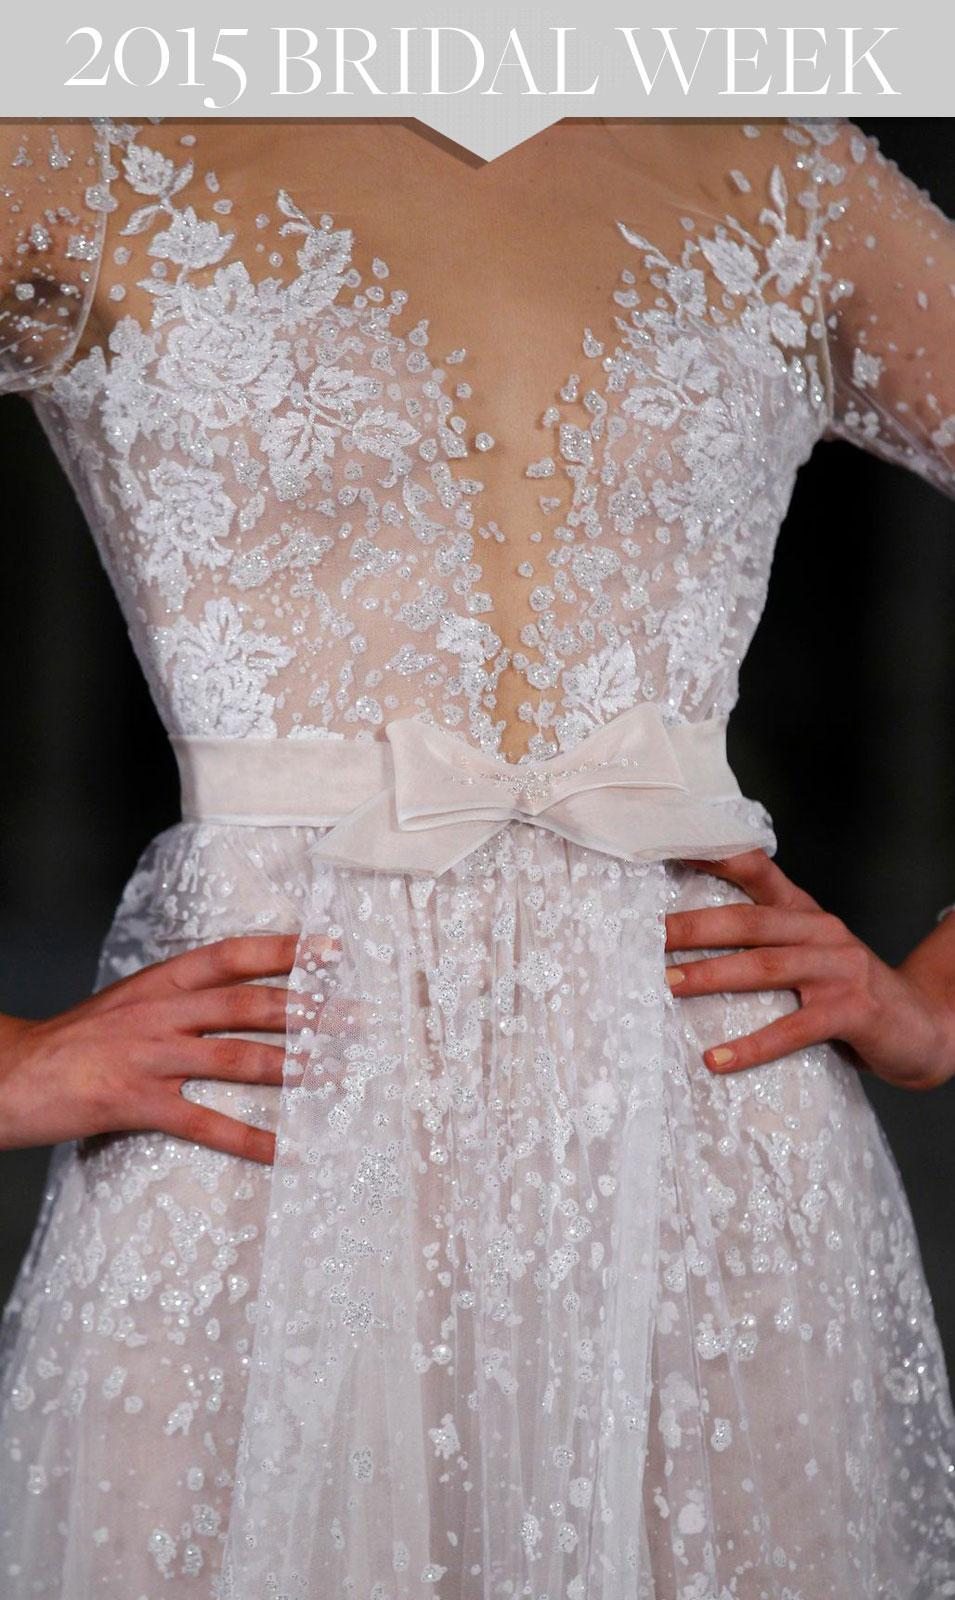 The Best Looks From Bridal Fashion Weekend